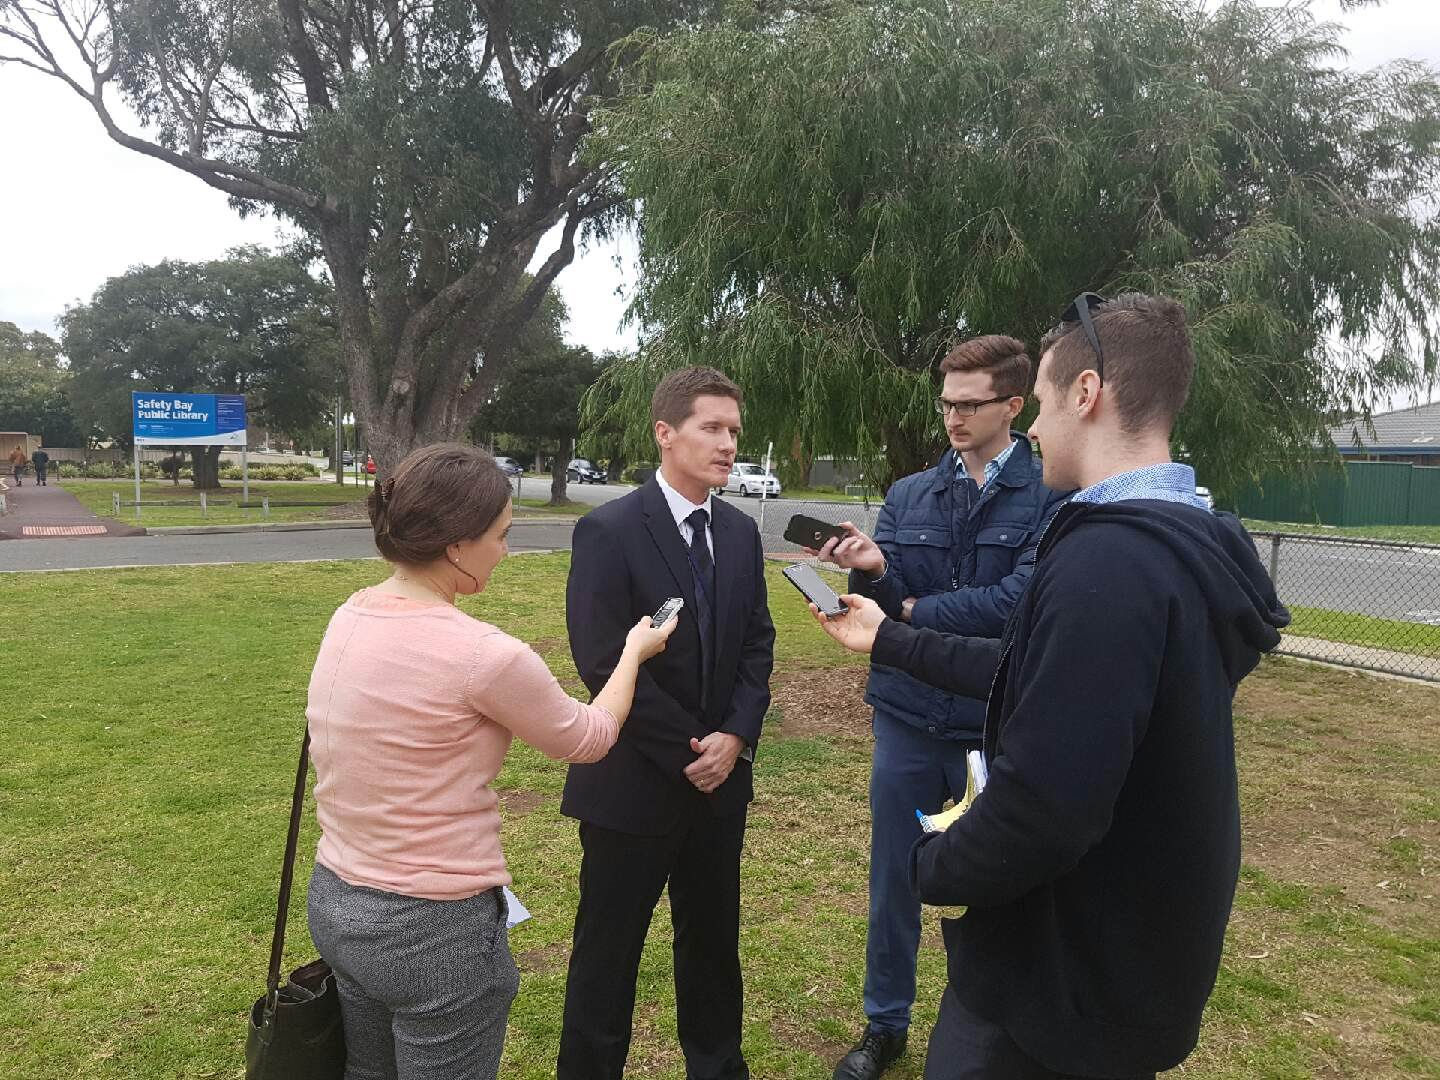 Detective Senior Constable Greg McDougall, of Rockingham Detectives, speaks to media at the scene of the assault.